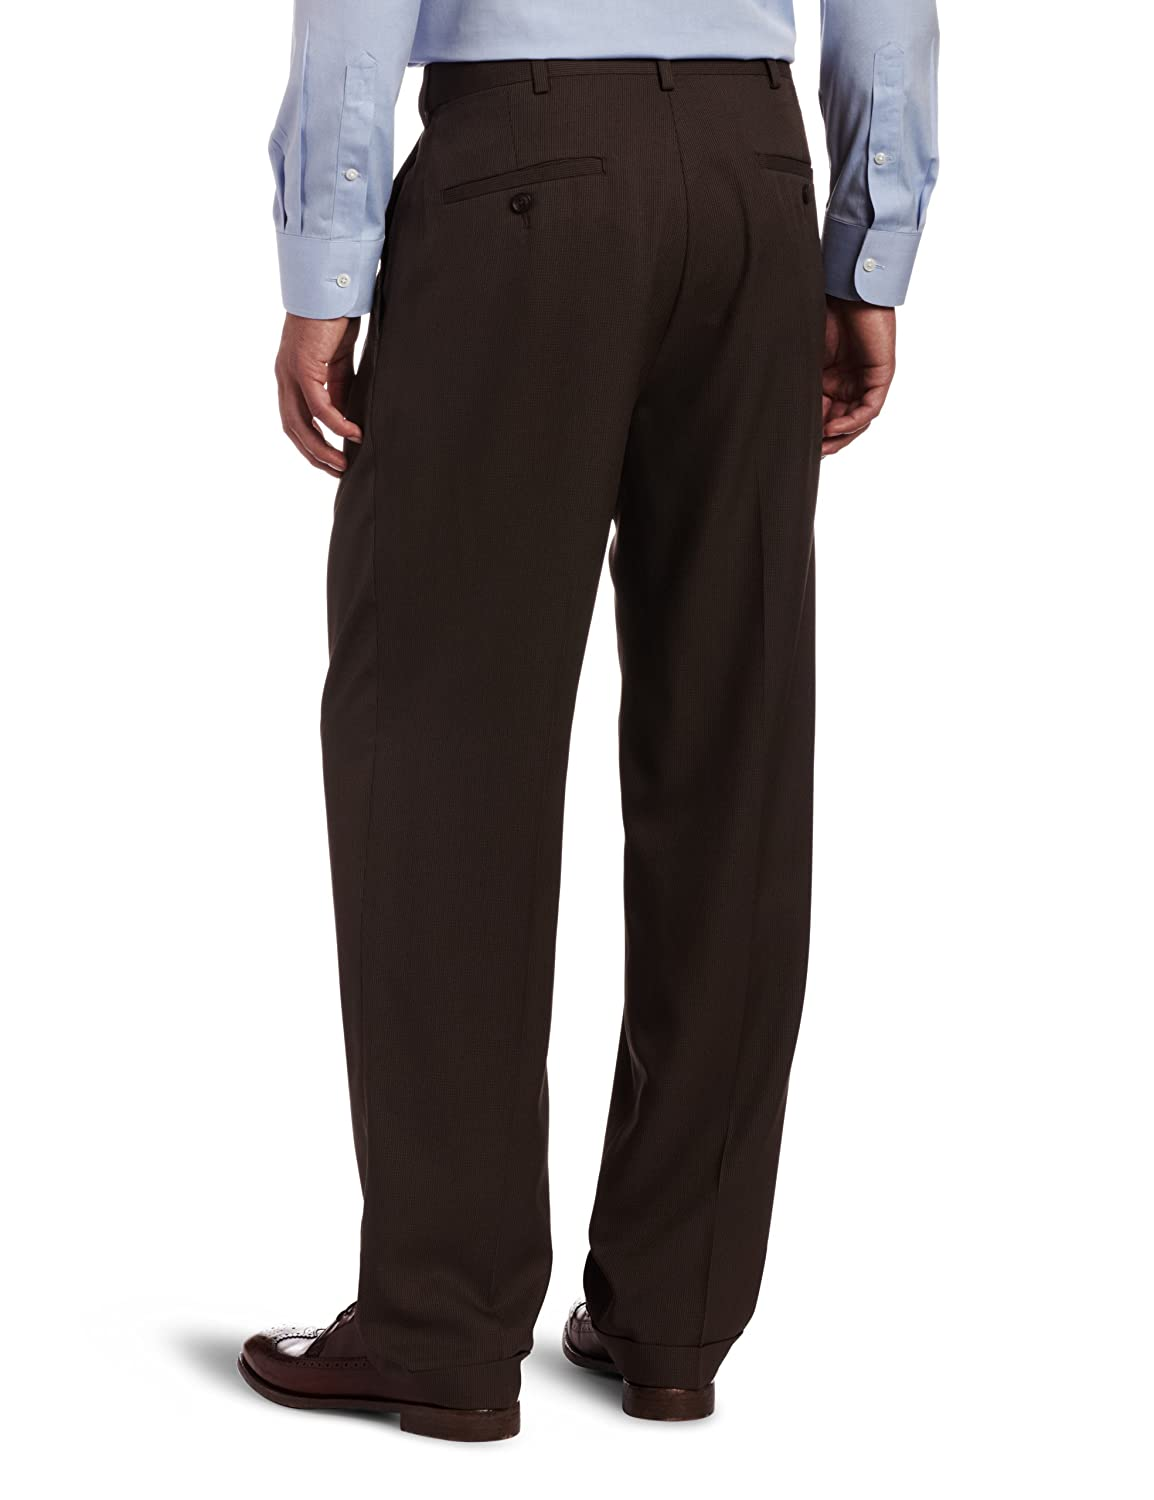 Haggar Mens Micro Houndstooth Pleat Front Expandable Waist Dress Pant HD00307